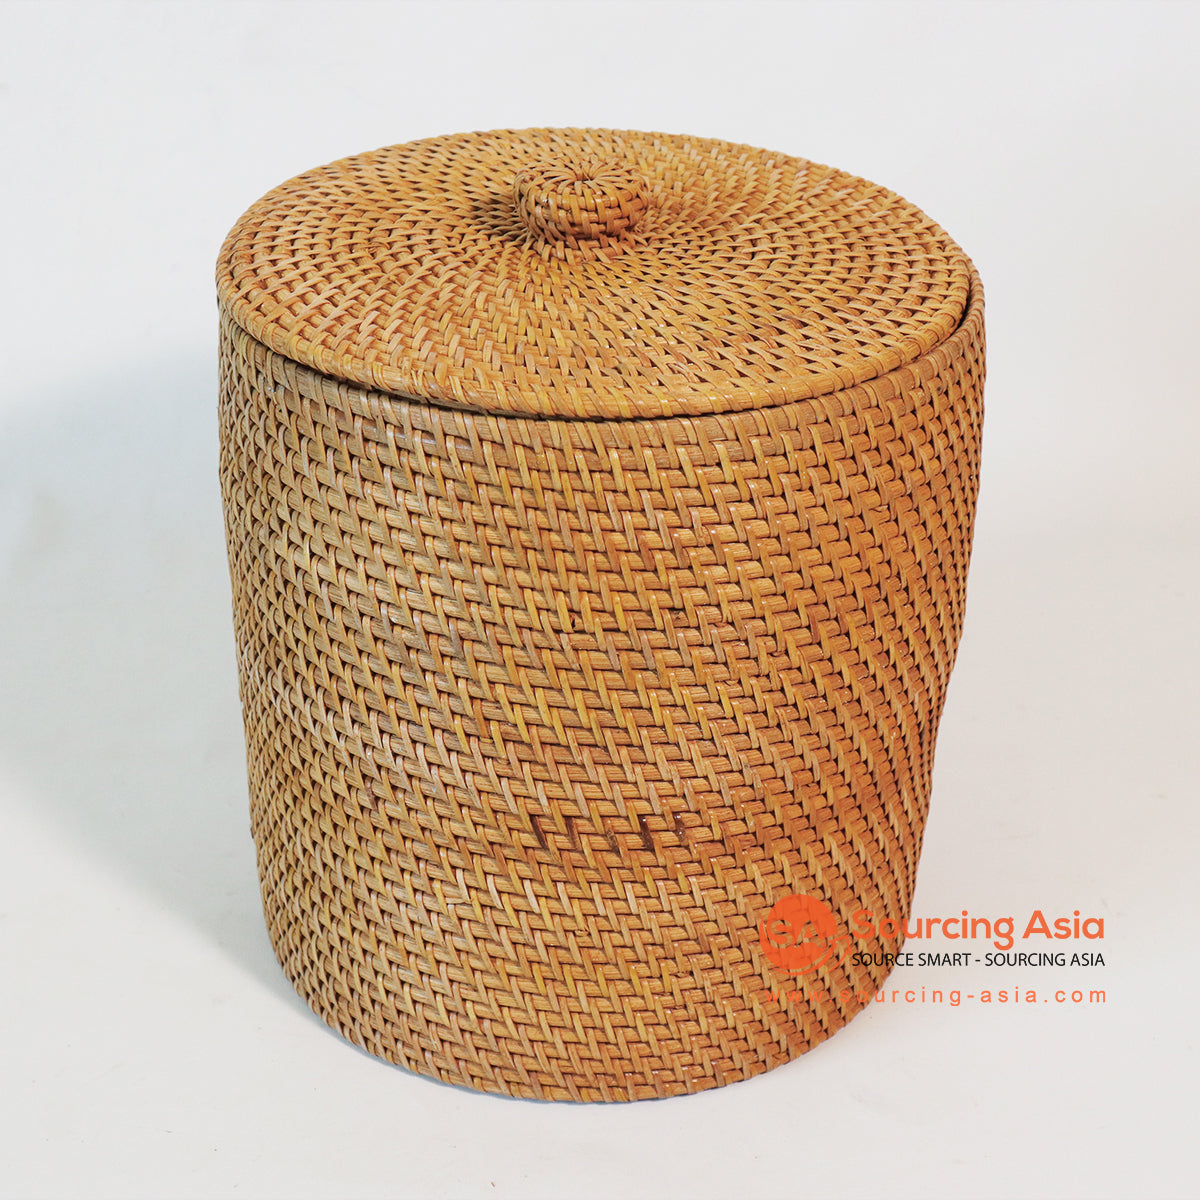 MTIC075 WASTE PAPER BASKET